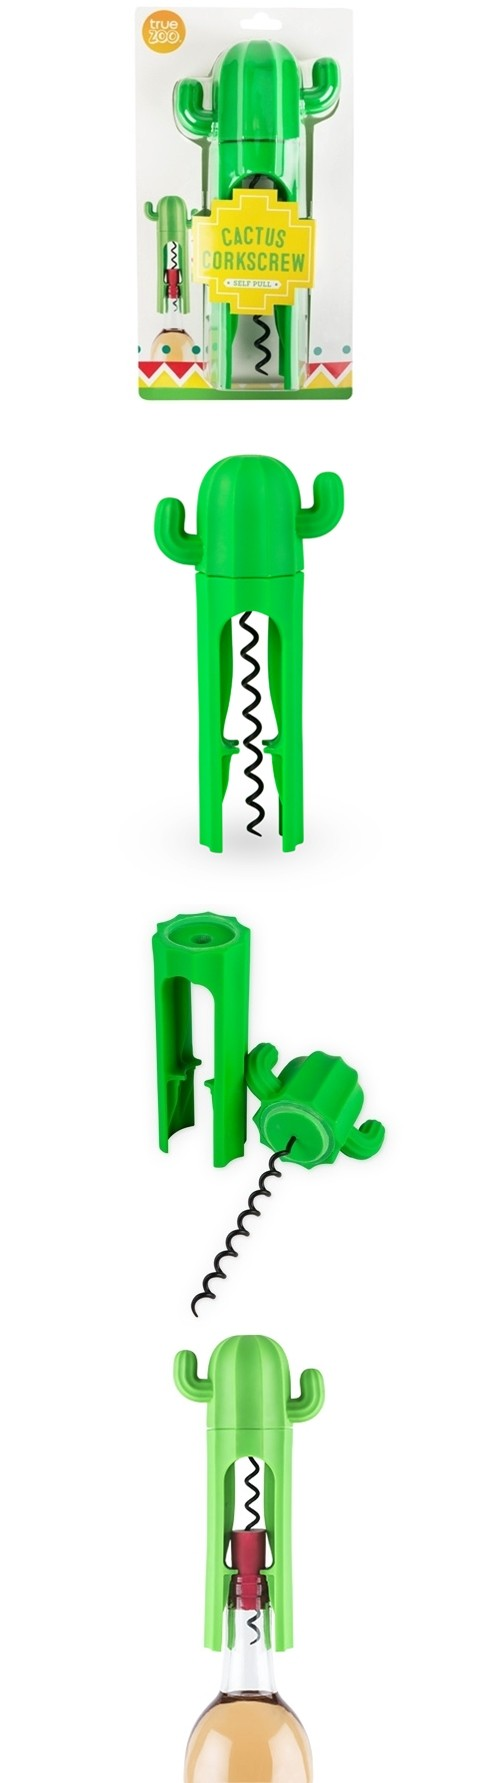 Desert Chic Cactus Design Self-Pull Corkscrew by TrueZOO